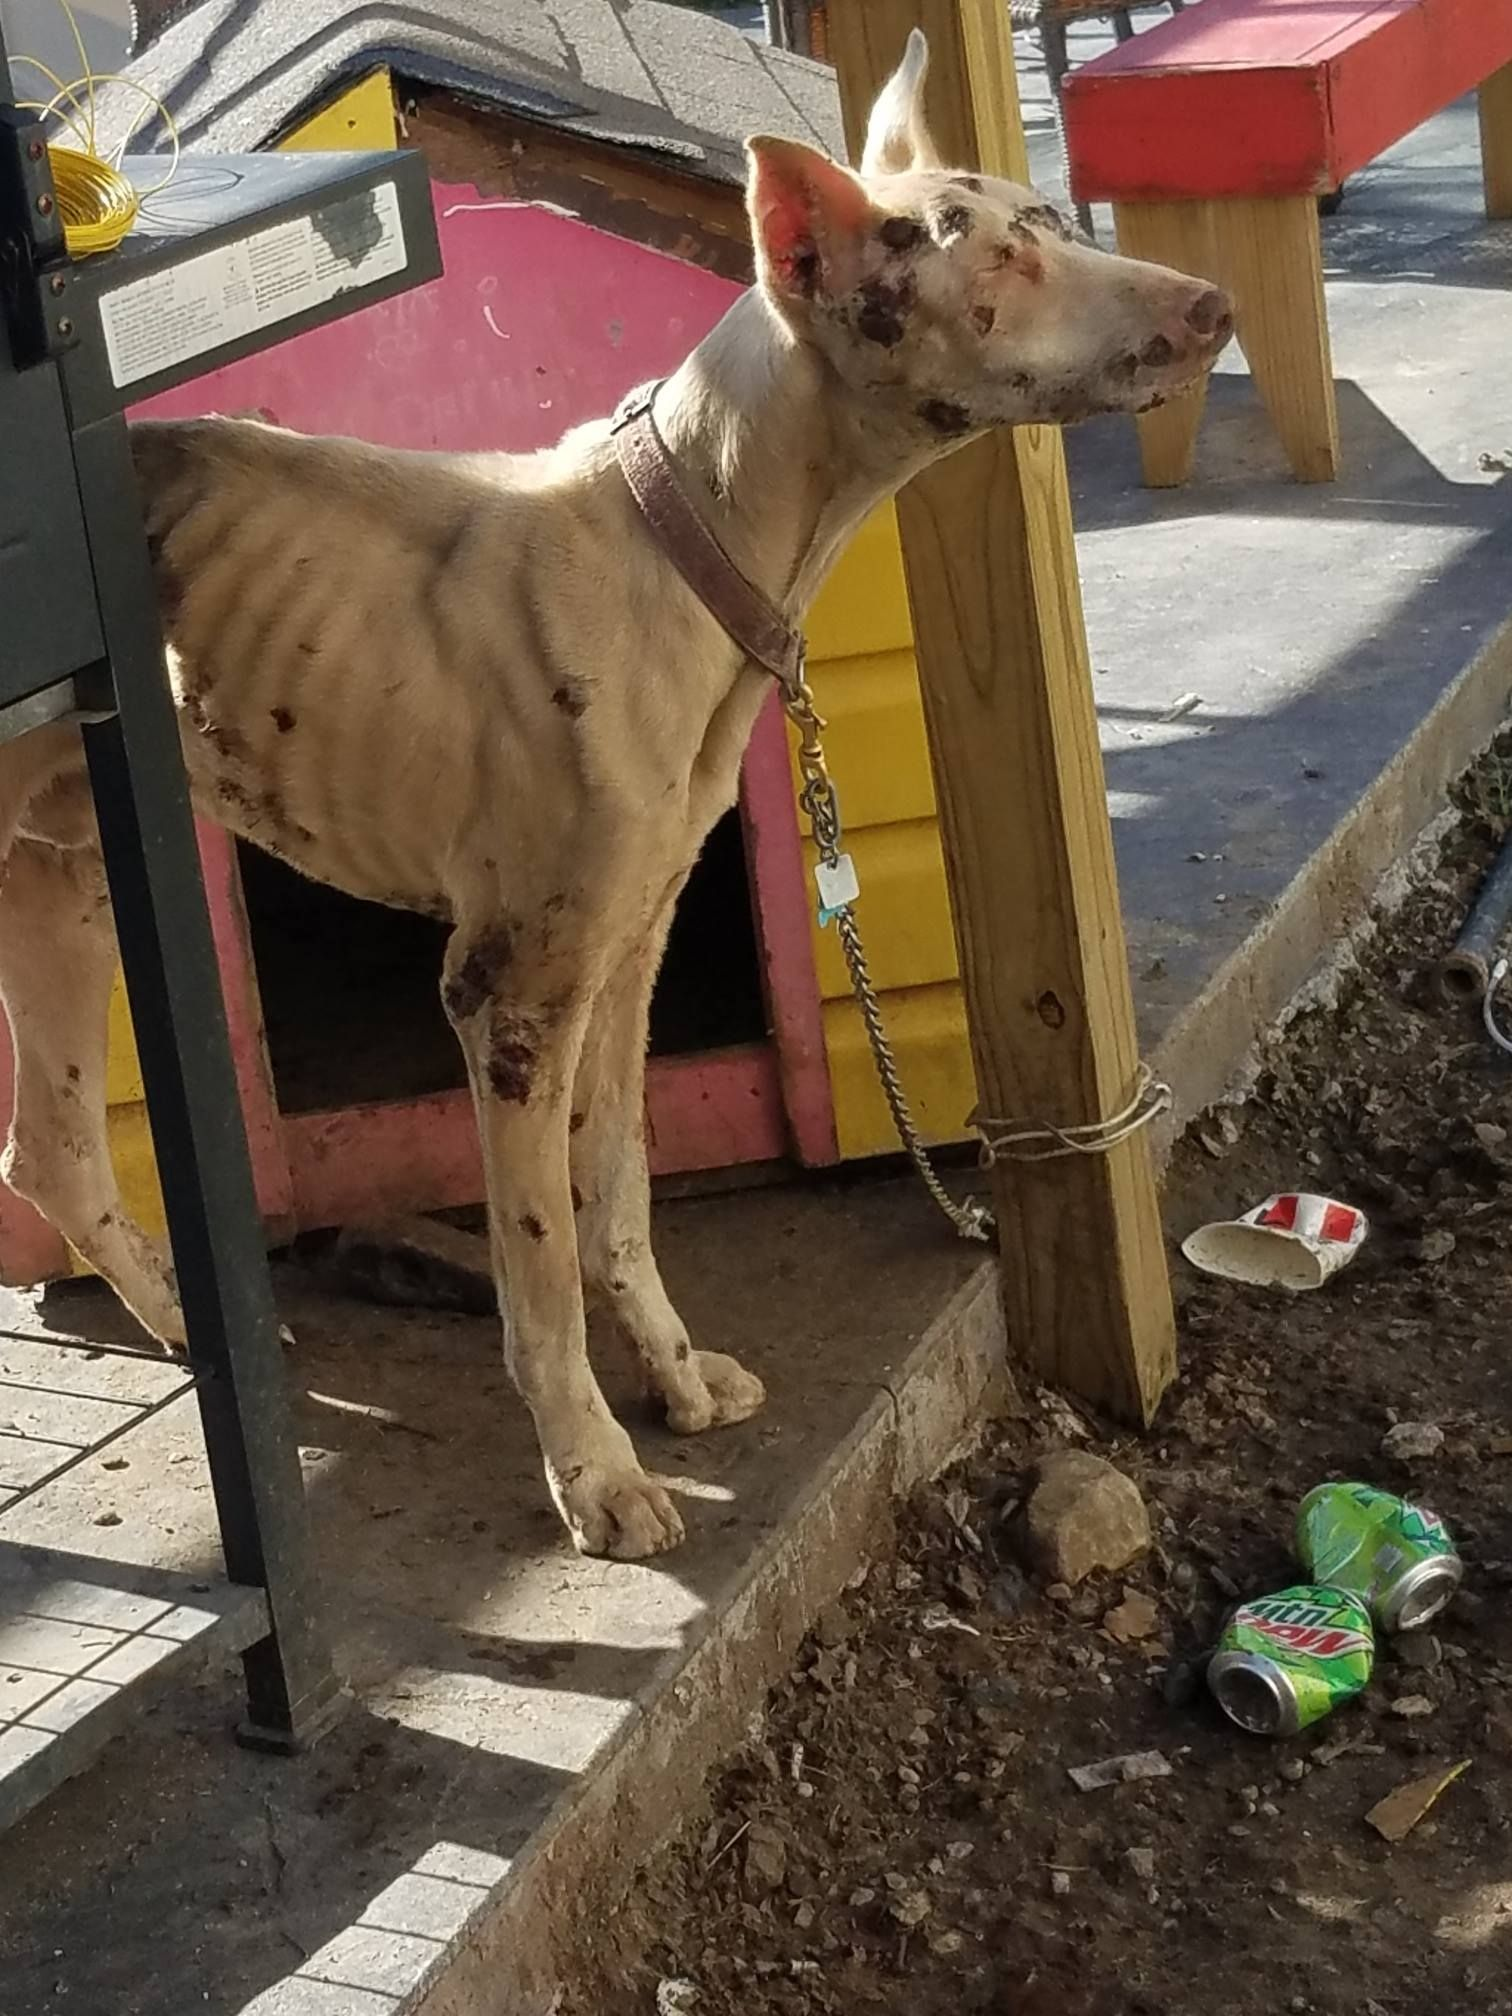 Emaciated Dog Reportedly Starved and Neglected Deserves